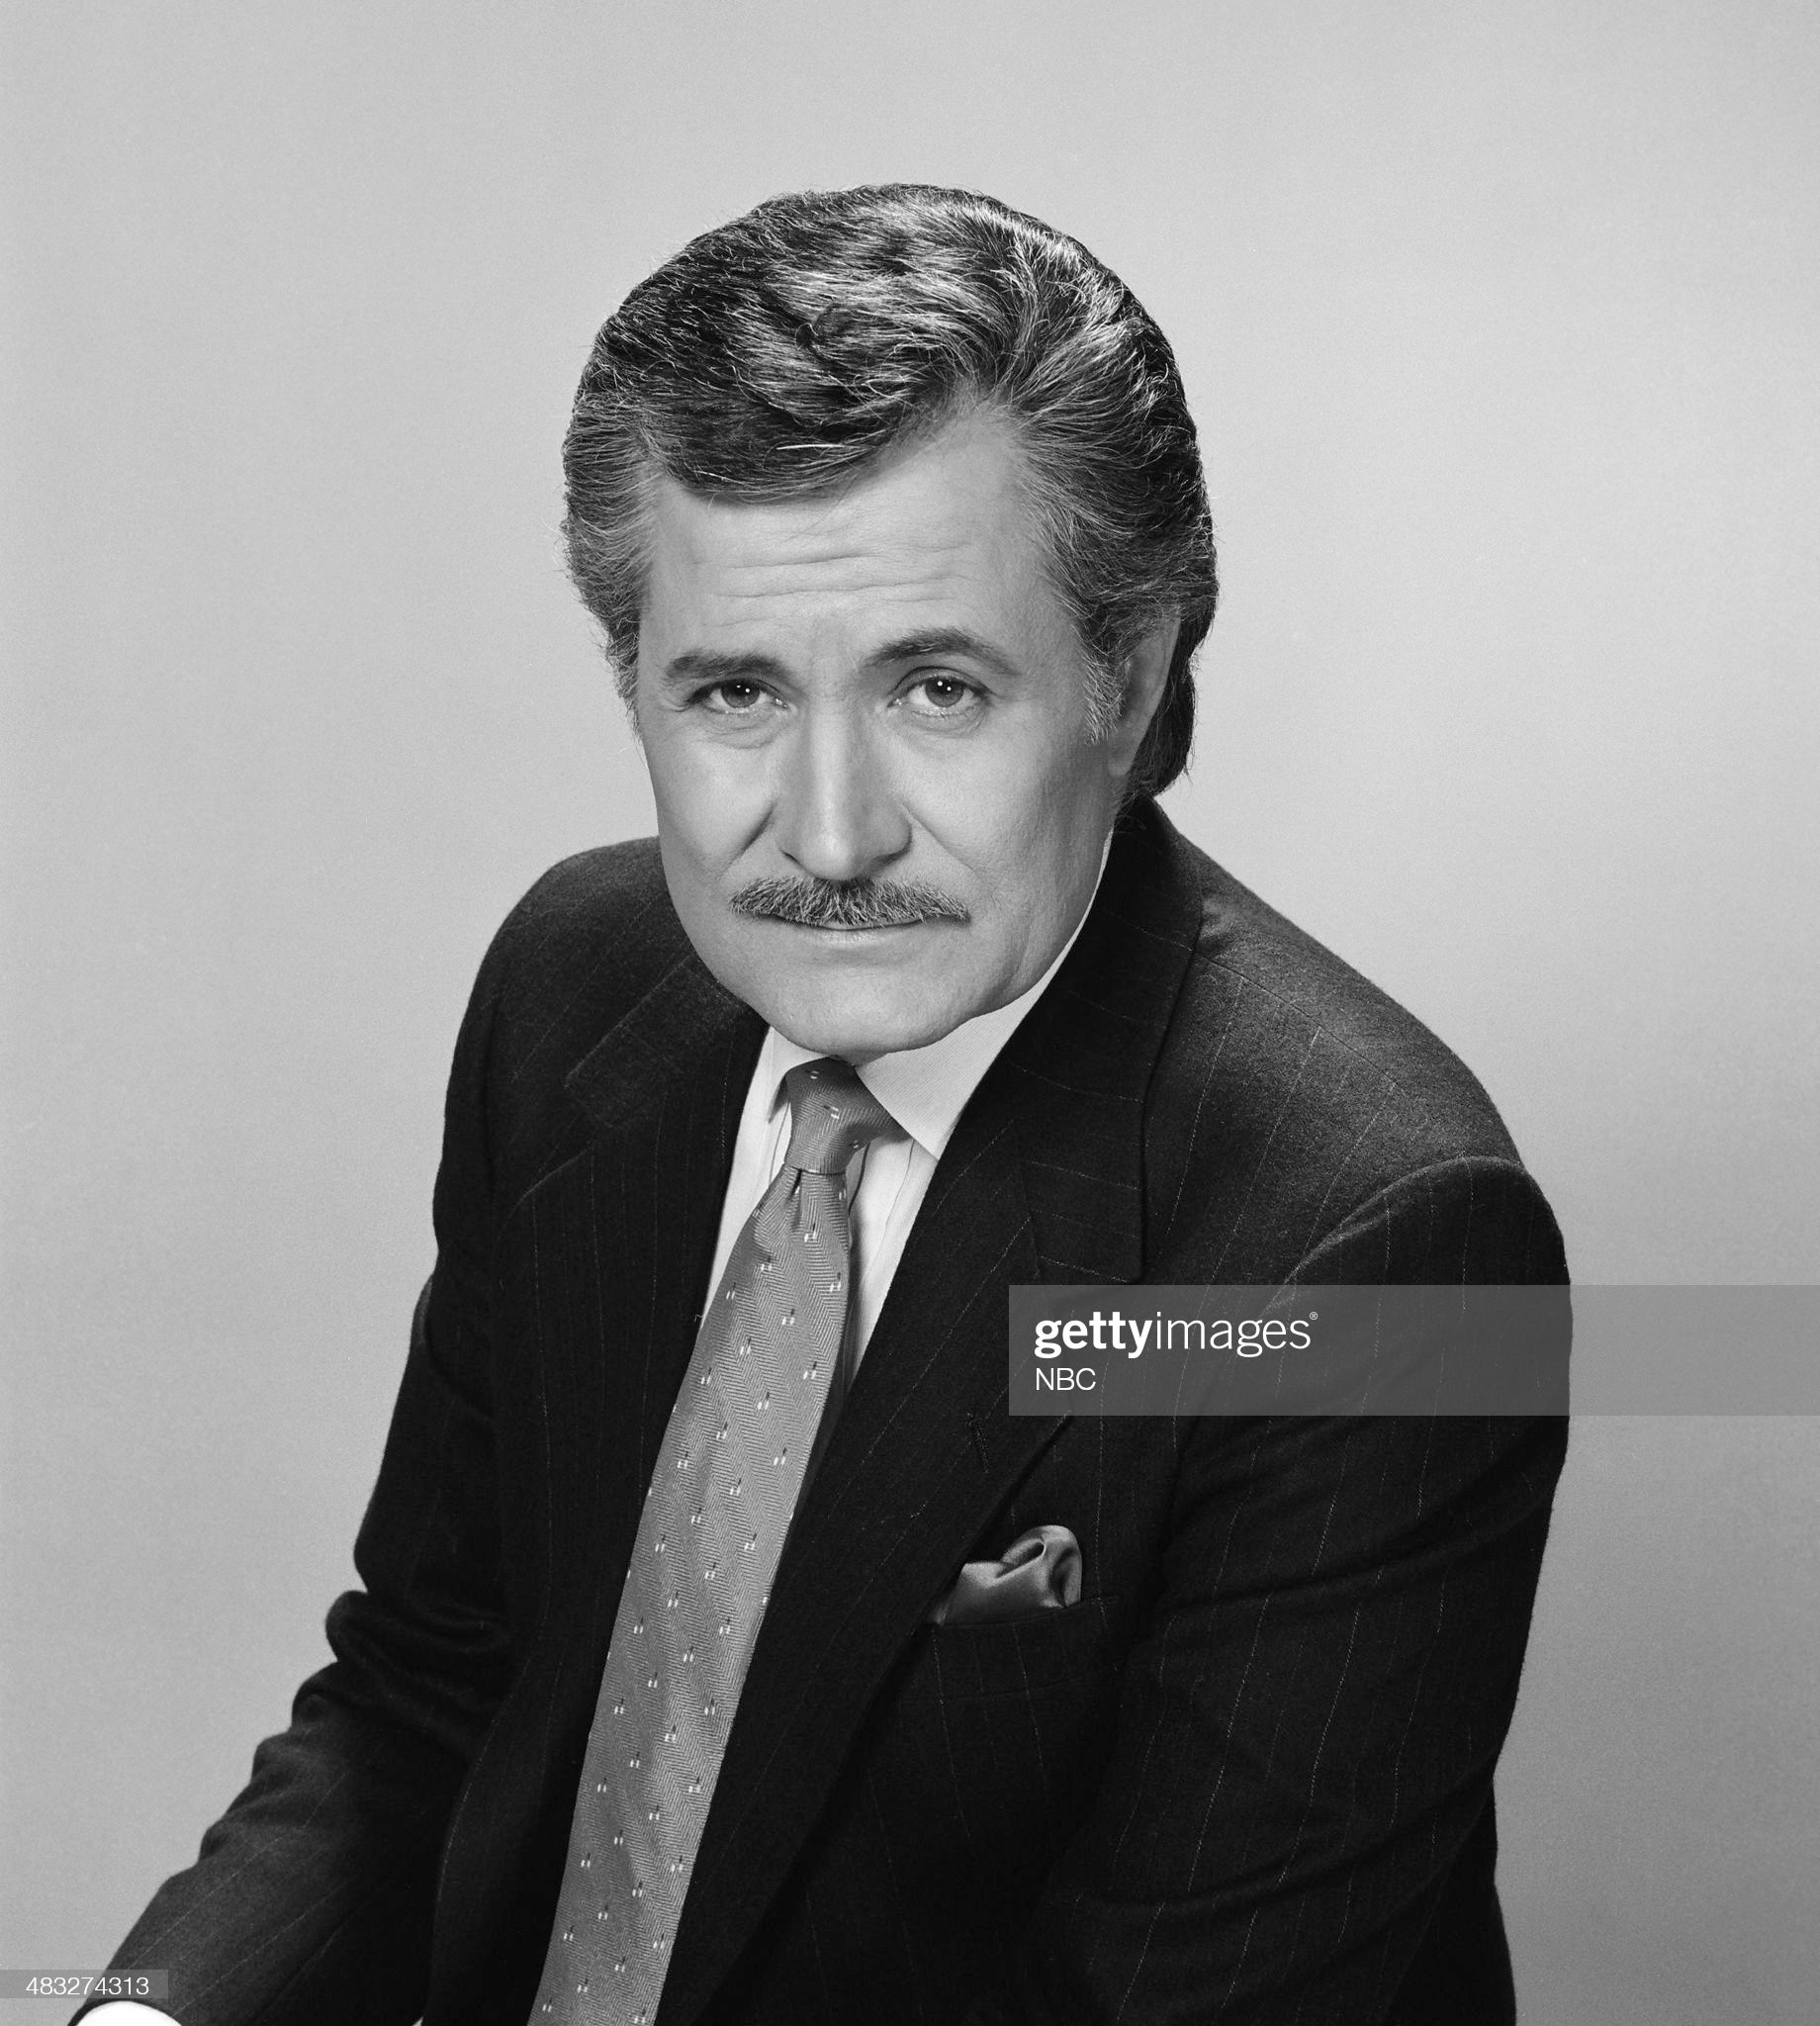 pictured-john-aniston-as-victor-kiriakis-picture-id483274313